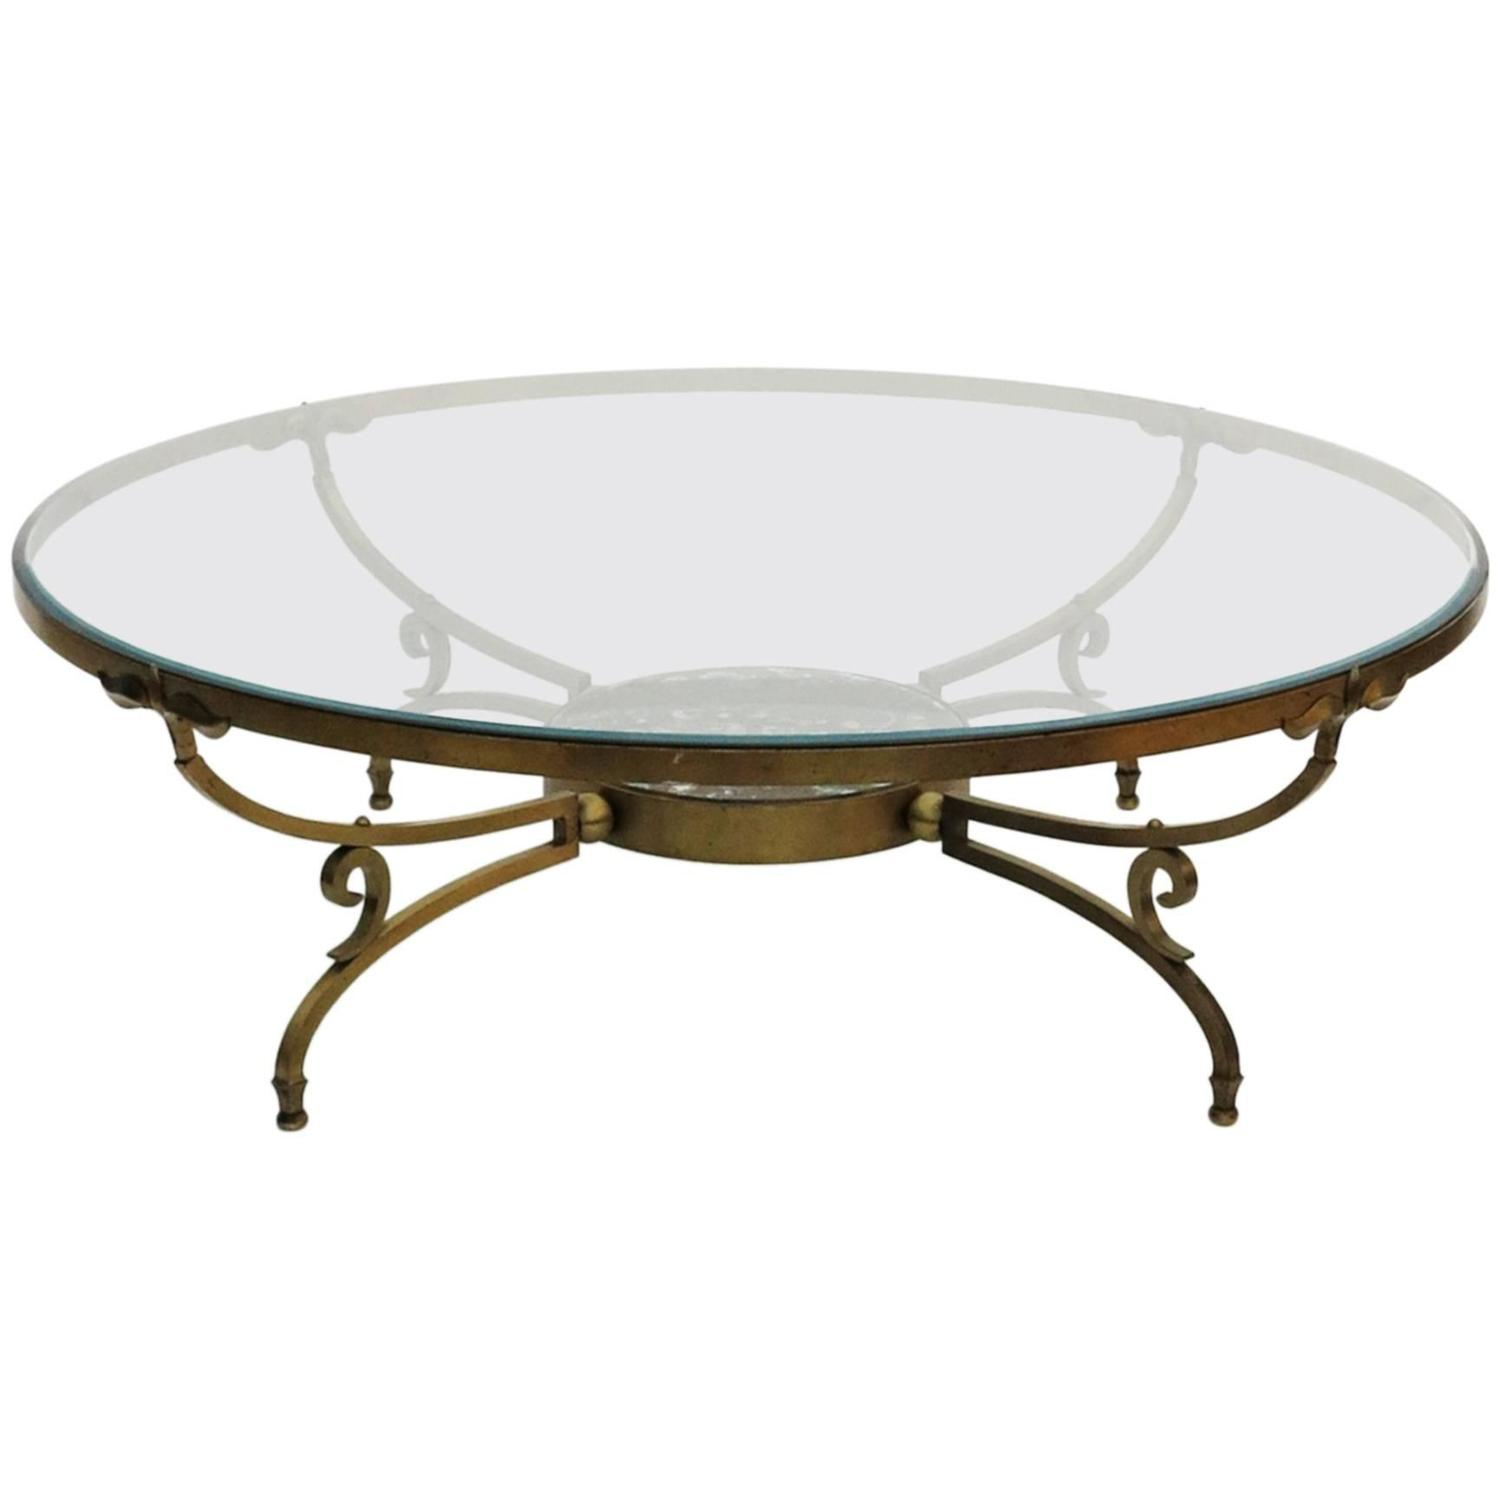 Round Bronze And Glass Coffee Table By Arturo Pani For Sale At 1stdibs